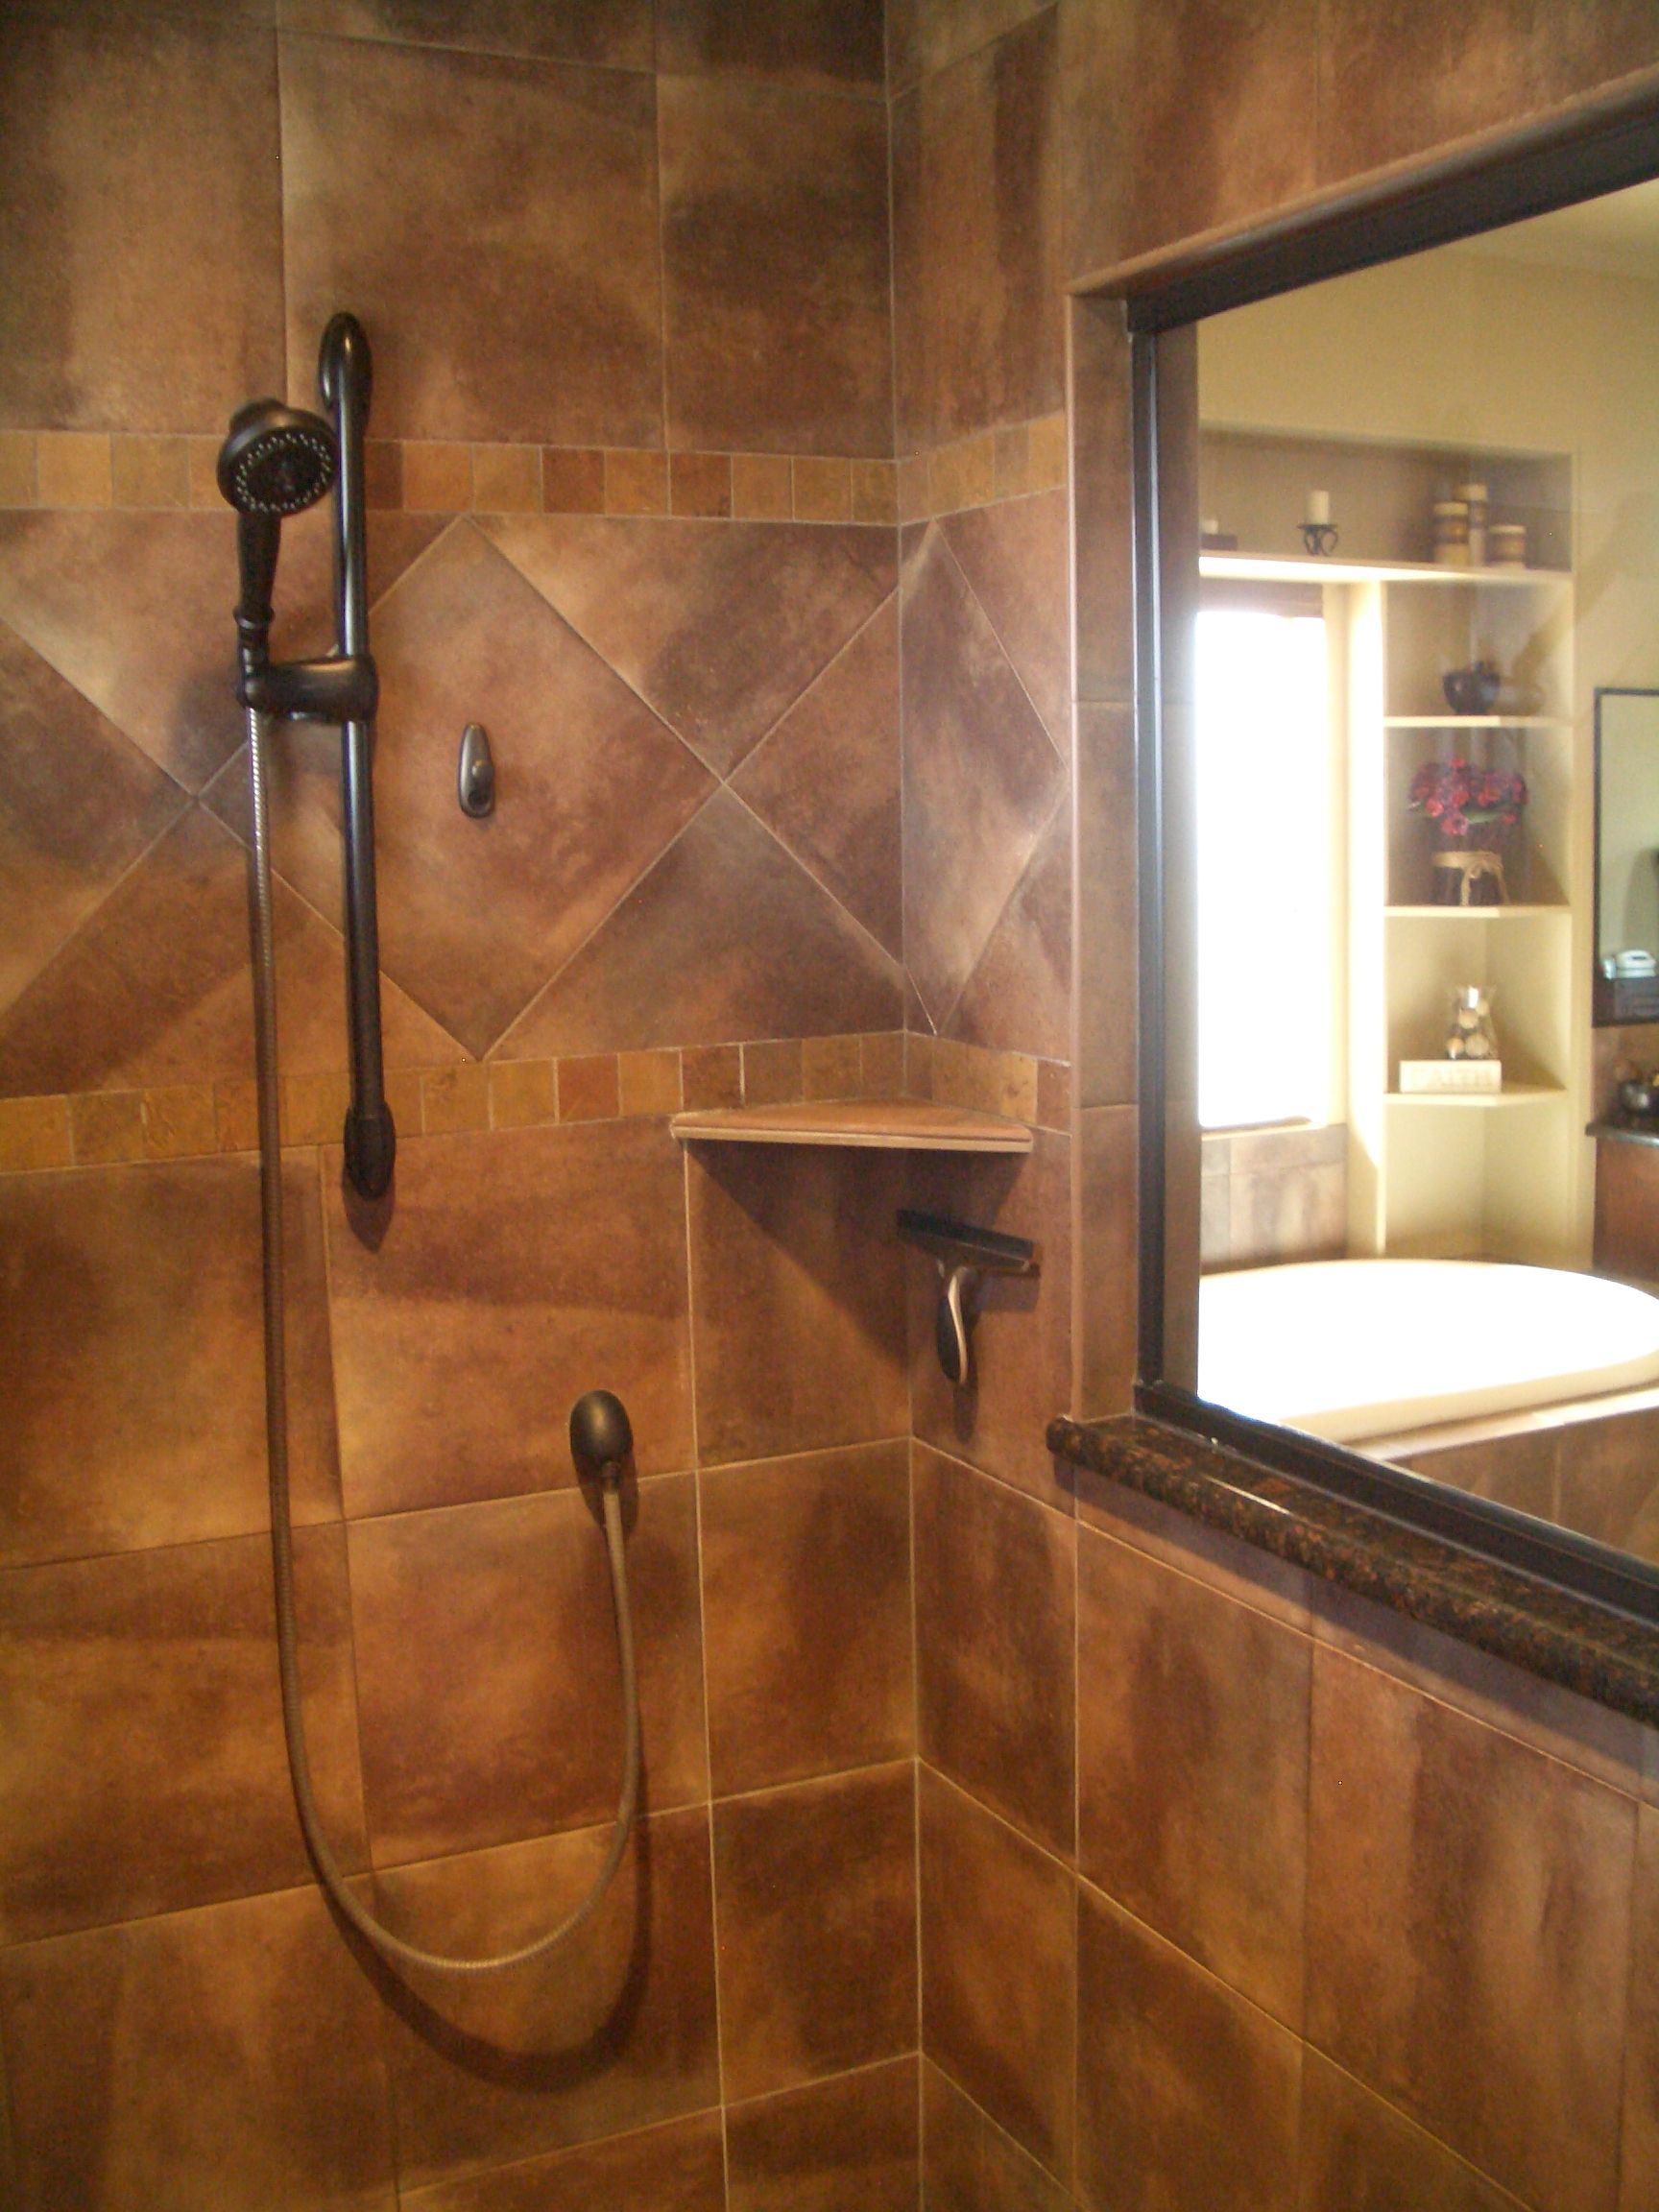 How to build a shower shelf and read some other entertaining DIY ...